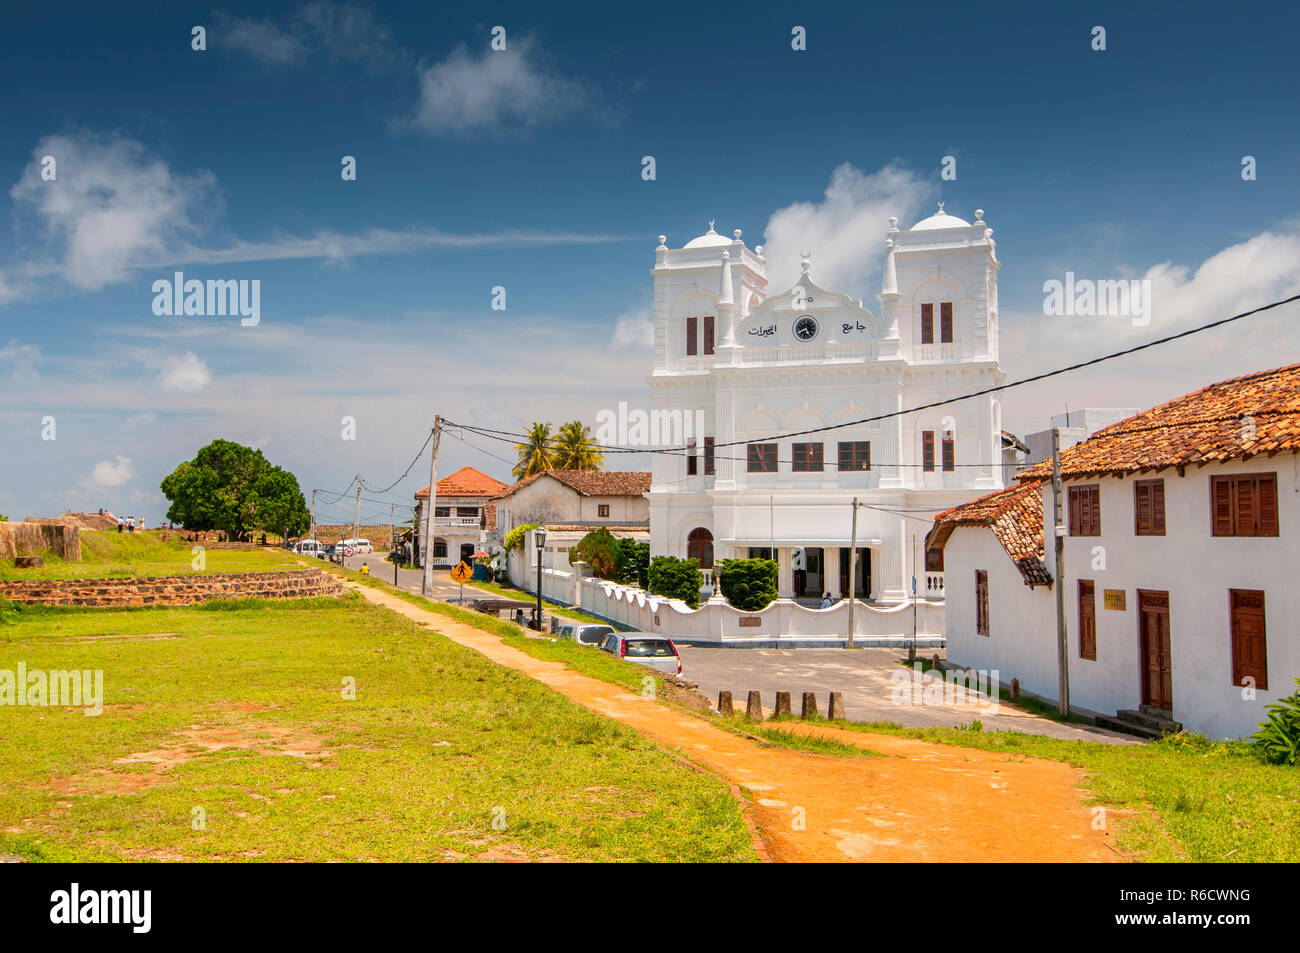 Meeran Jumma Mosque At The Point Utrecht Bastion In The Old Dutch Fort, Galle, Southern Province, Sri Lanka - Stock Image